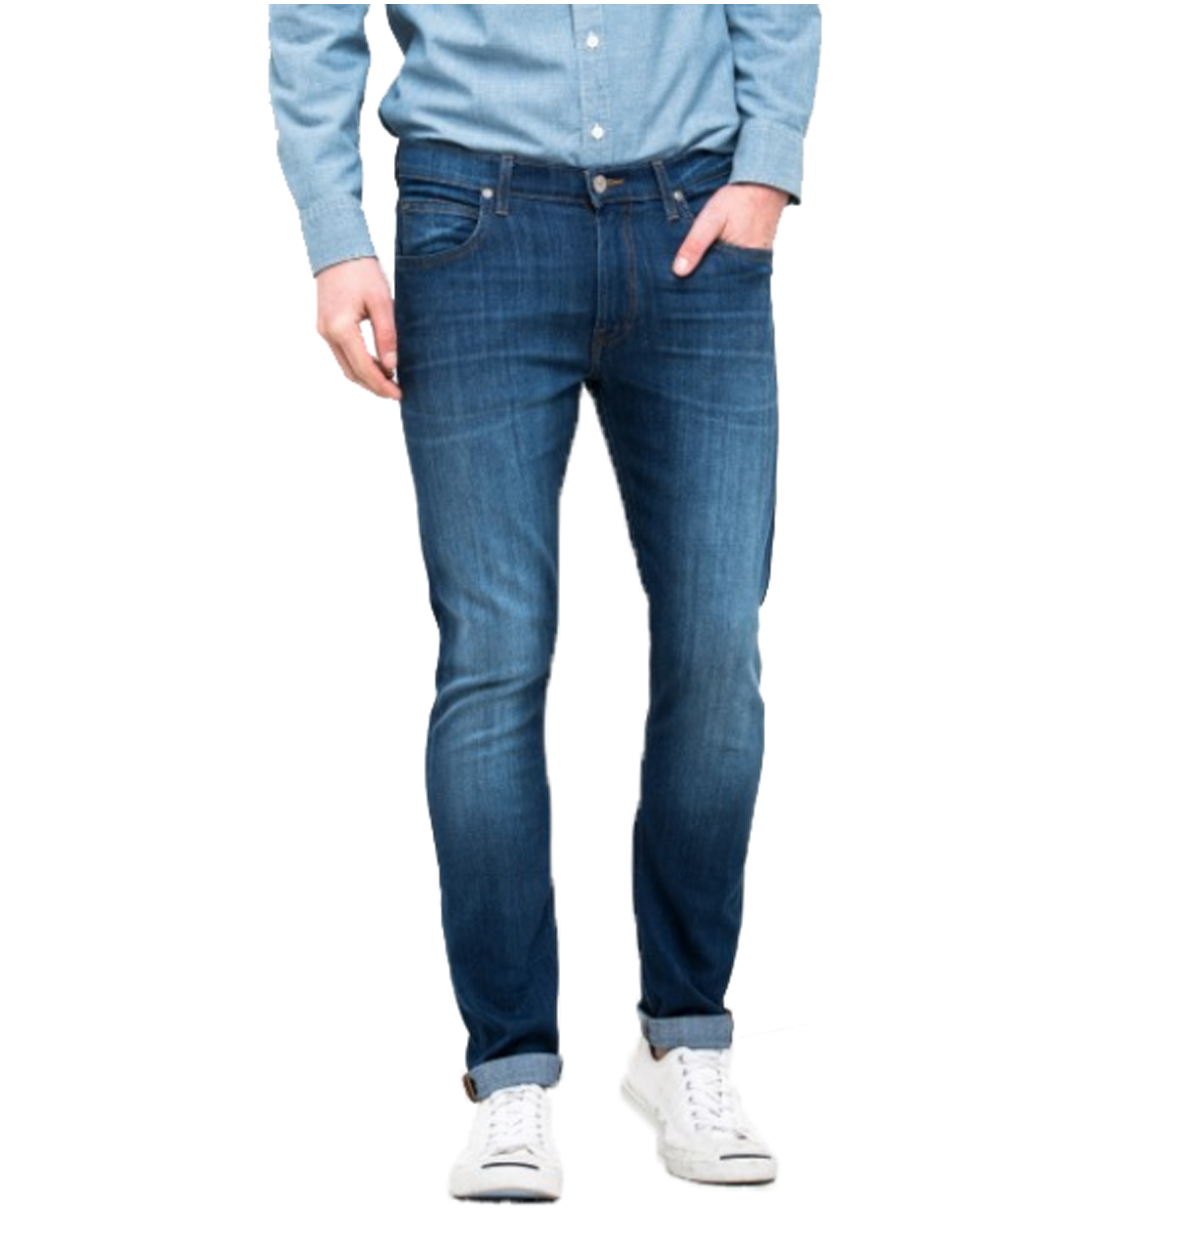 fa6205741c PANTALÓN VAQUERO LEE® LUKE SLIM TAPERED AZUL